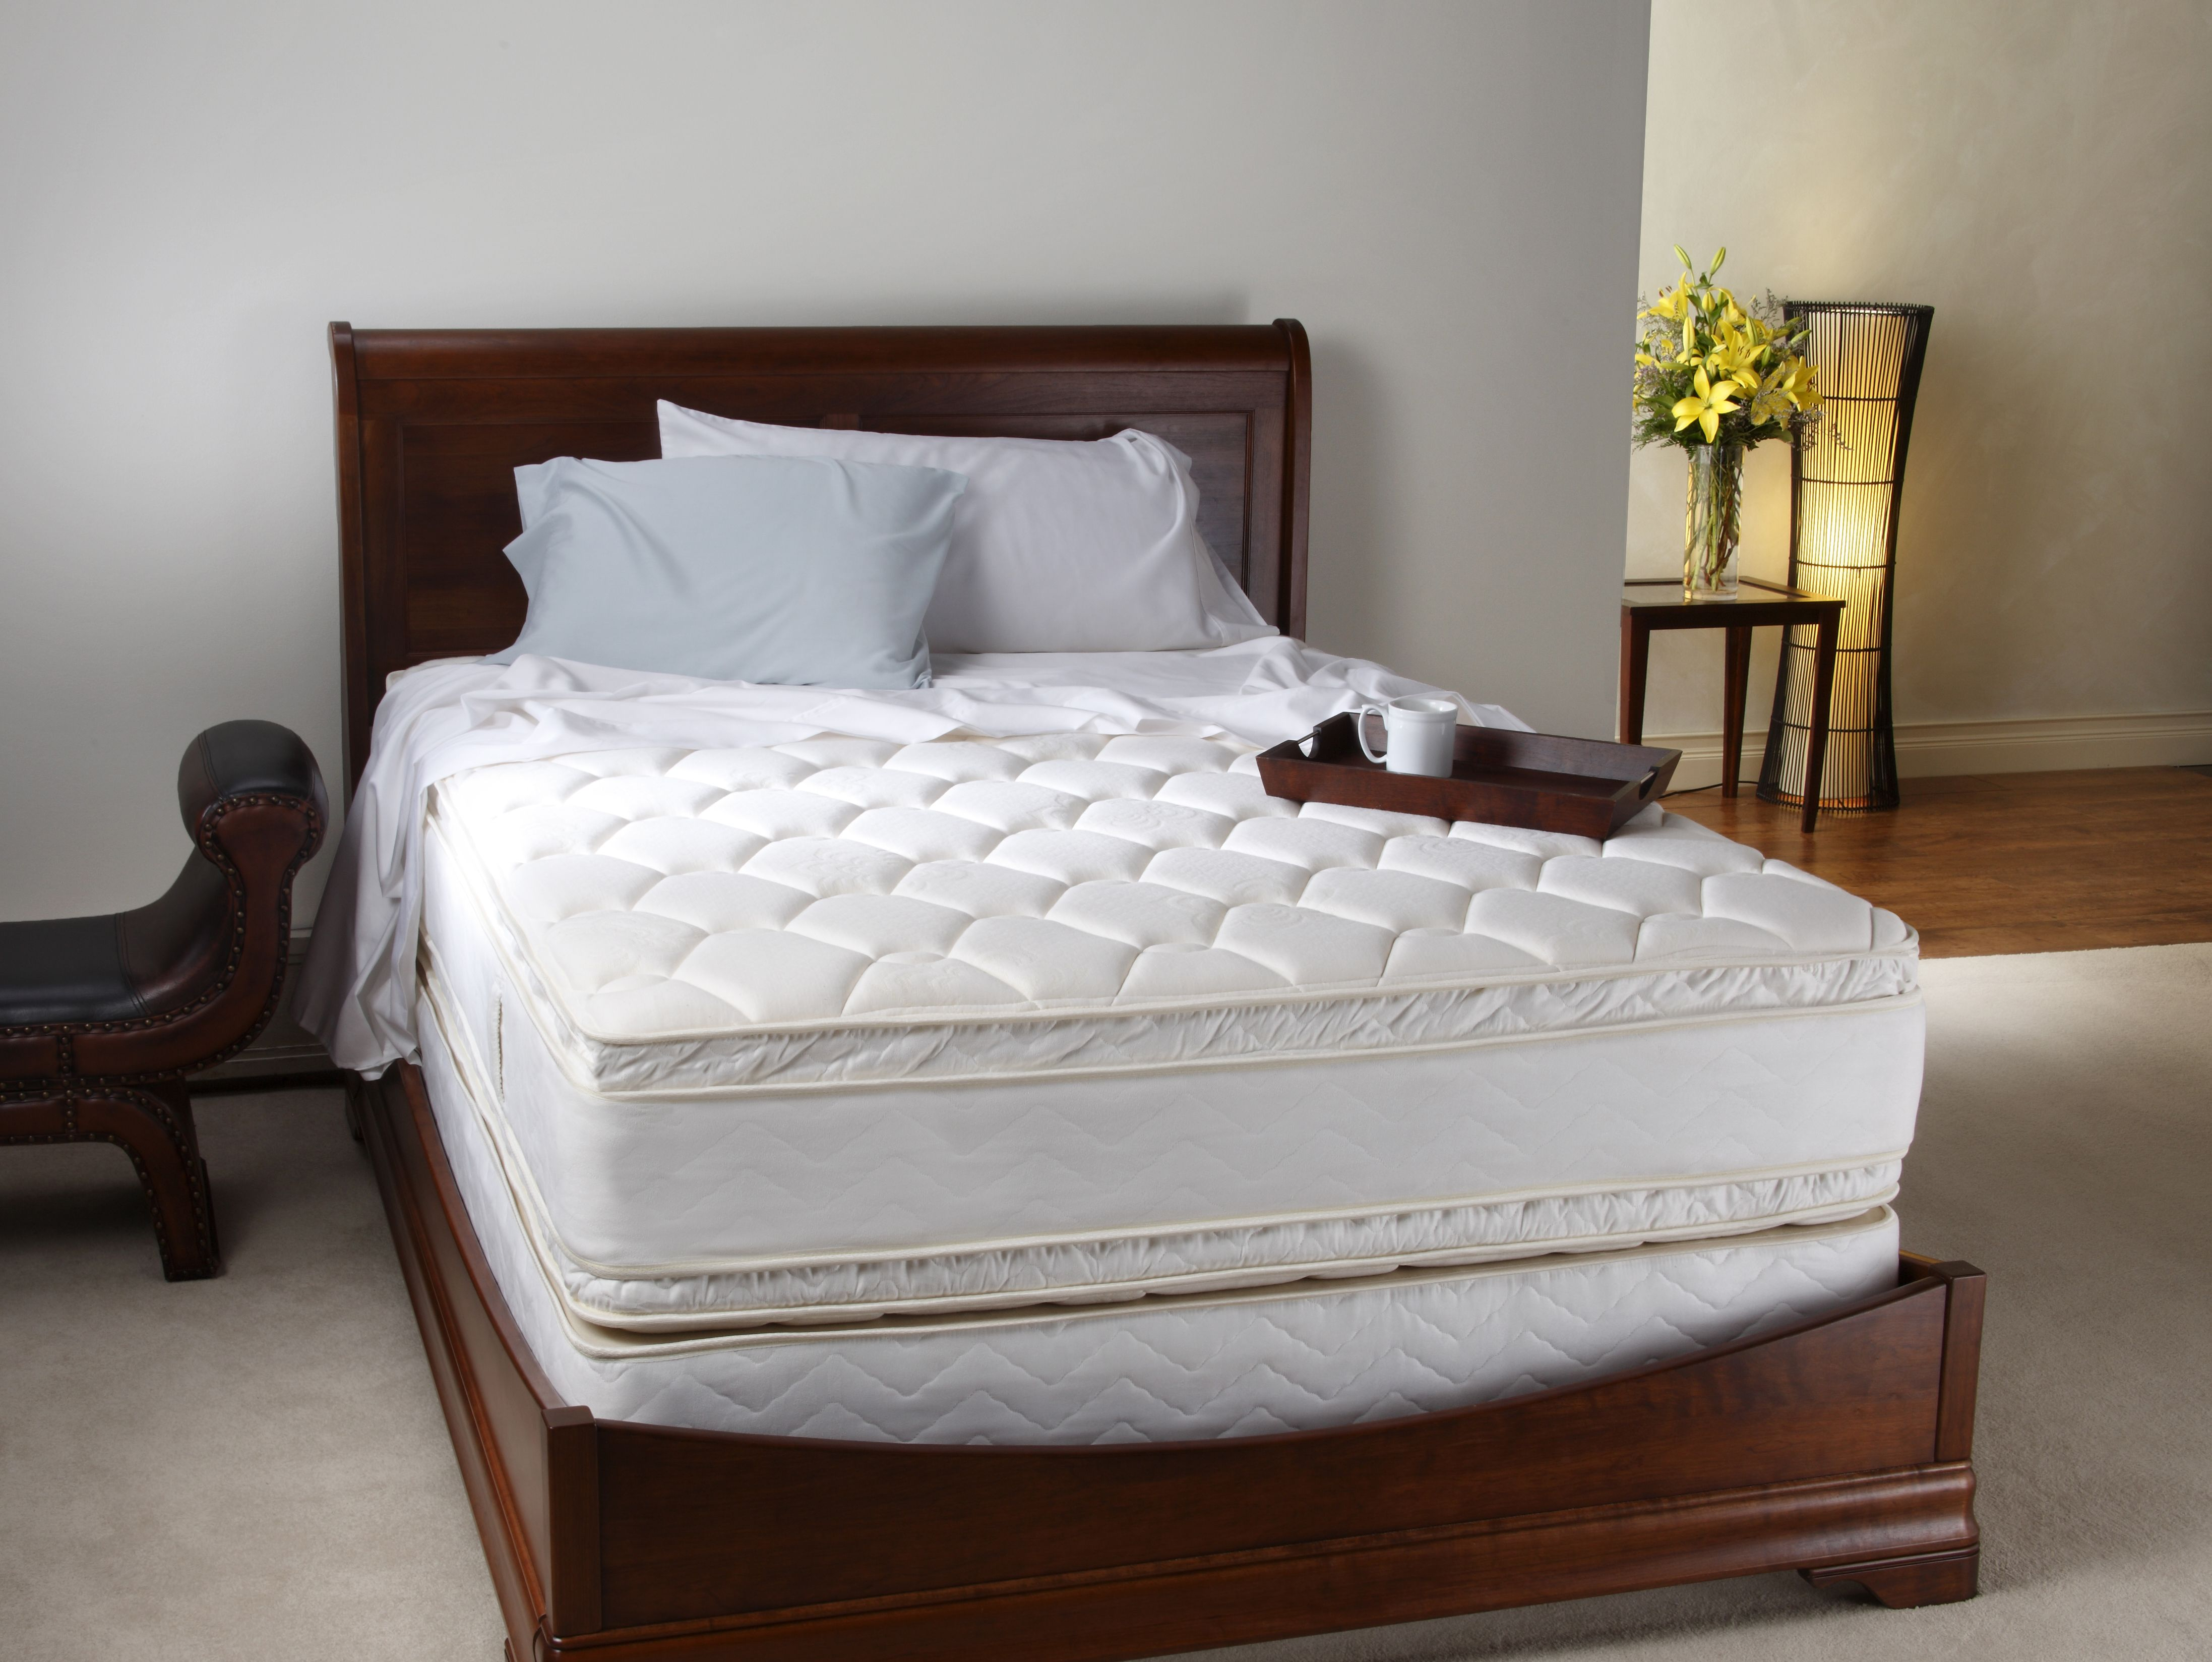 High Quality Genuine Amish Made Mattresses Amish Mattresses Showcase The Same Amazing  Standards Of Excellence As Amish Furniture. Choose The Elite Pillowtop  Mattress Set ...